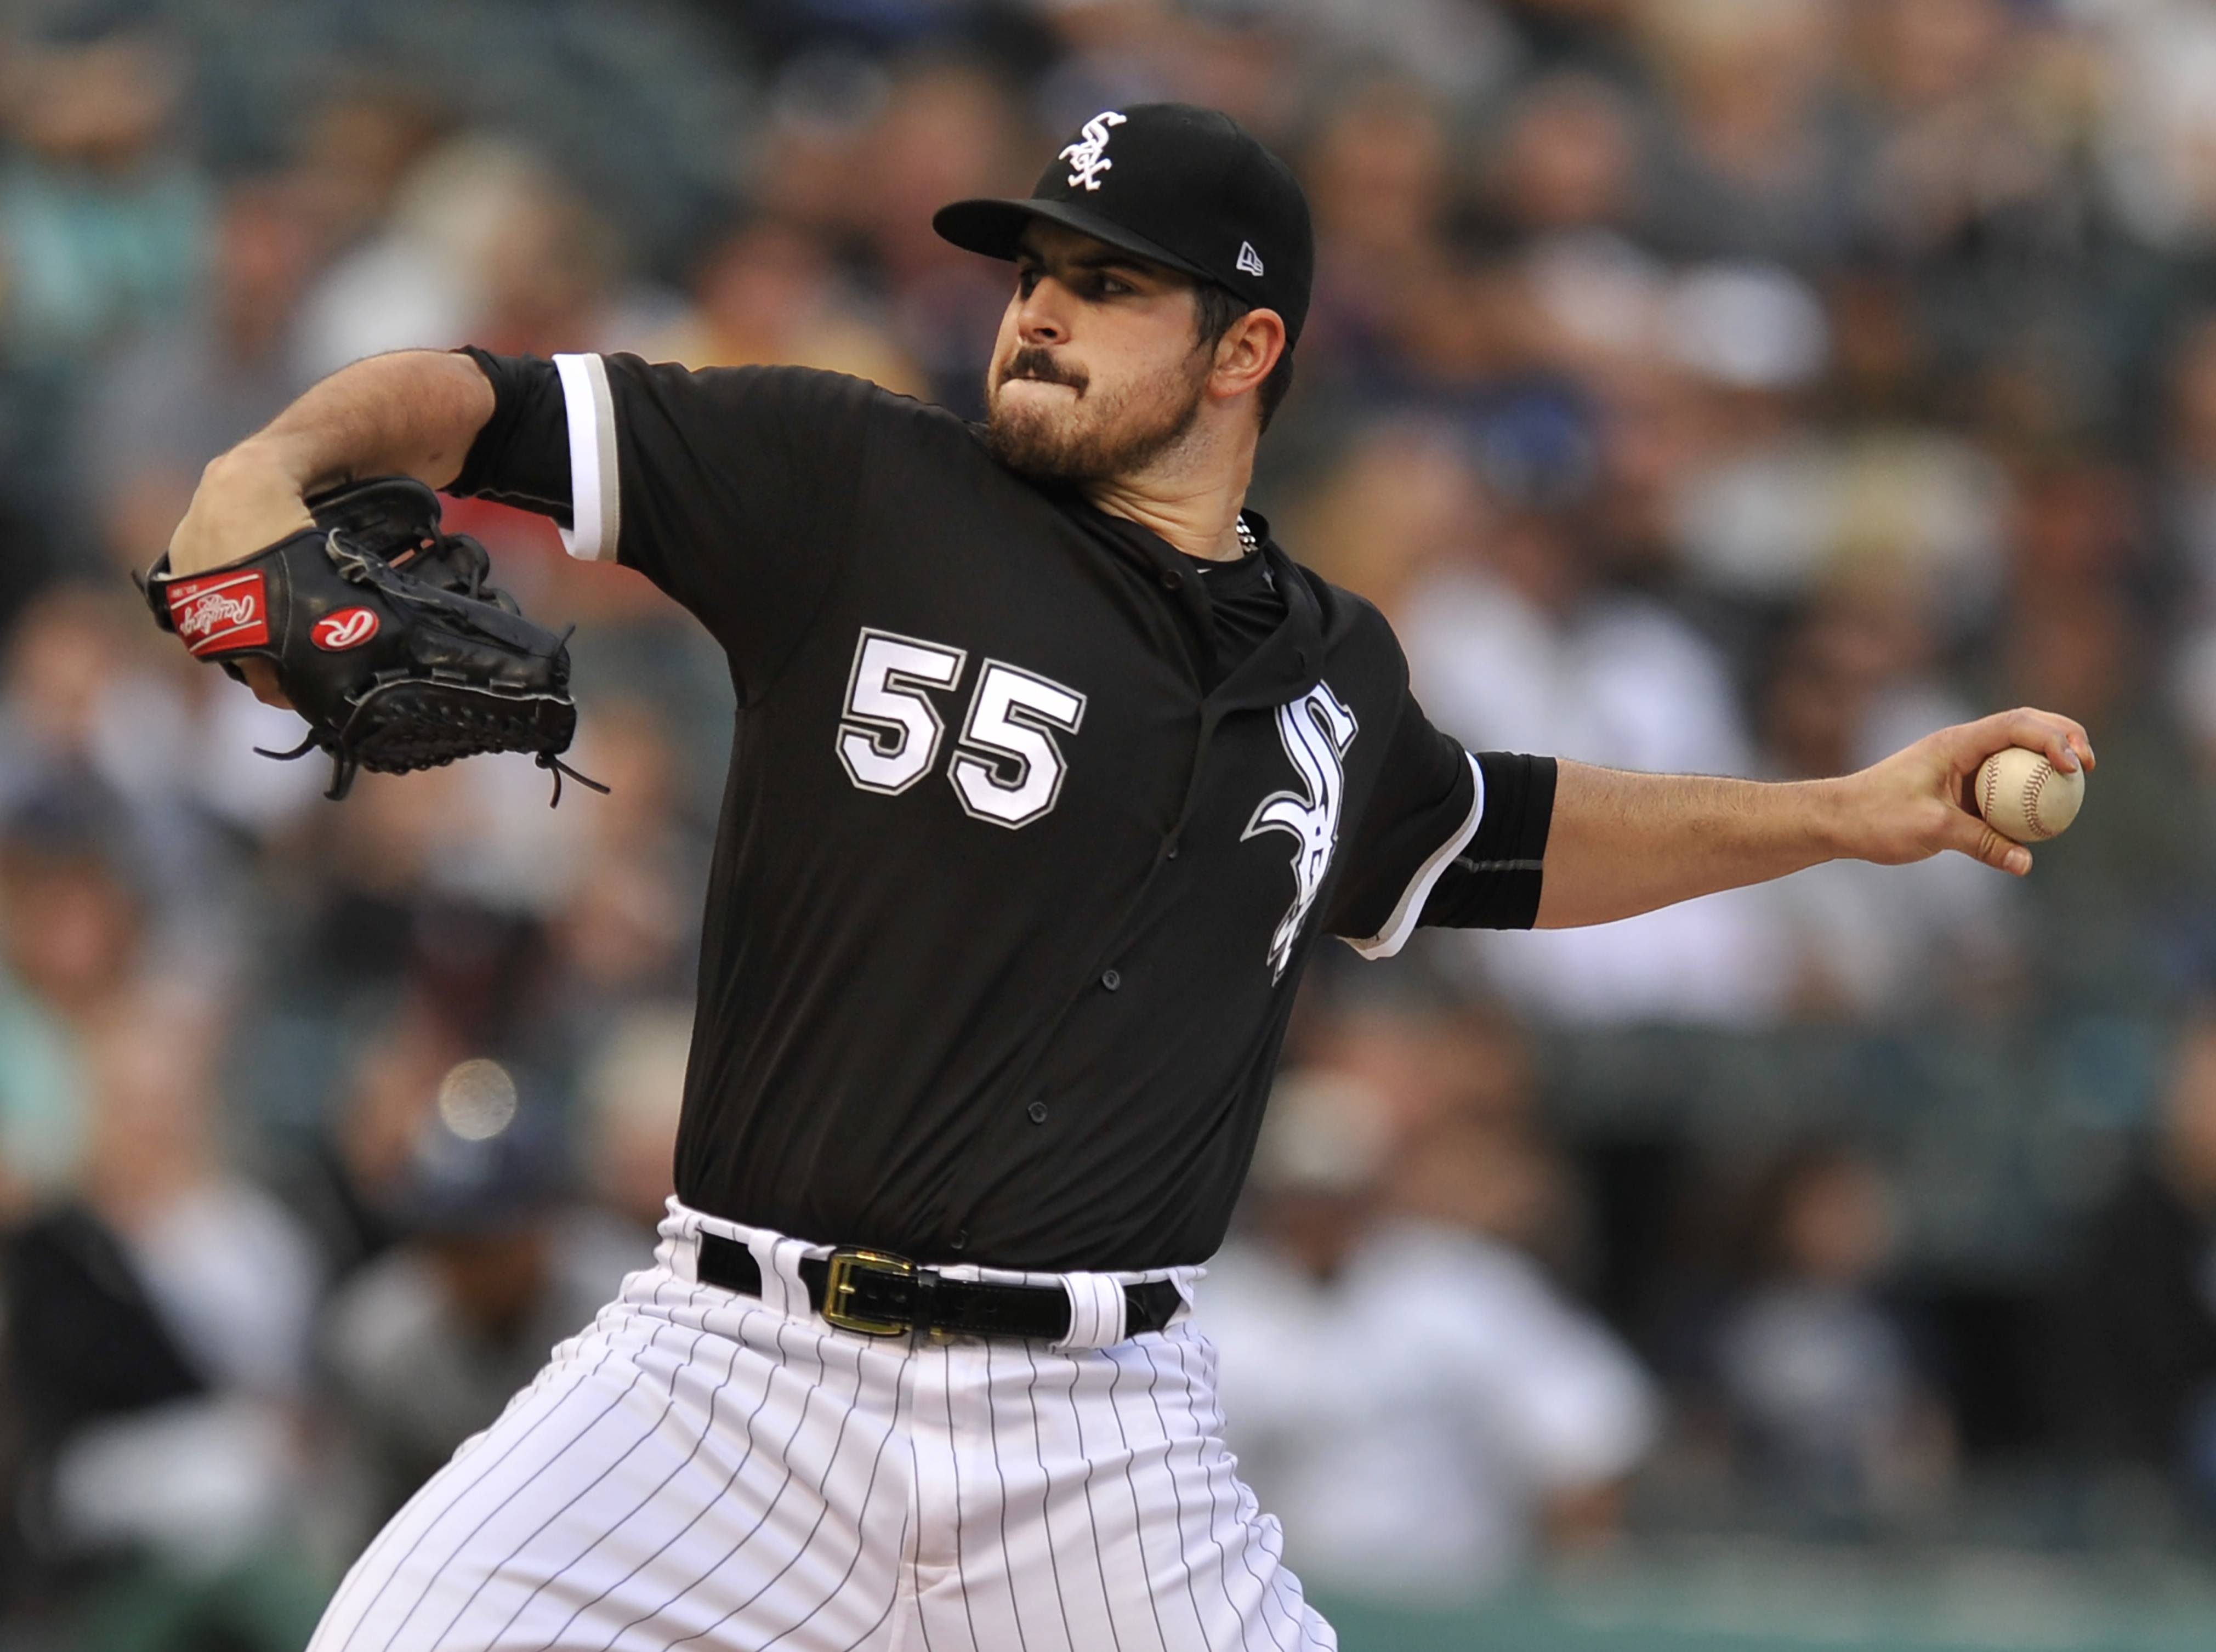 Chicago White Sox starter Carlos Rodon delivers a pitch during the first inning of a baseball game against the Tampa Bay Rays, Saturday, Sept. 2, 2017, in Chicago. (AP Photo/Paul Beaty)